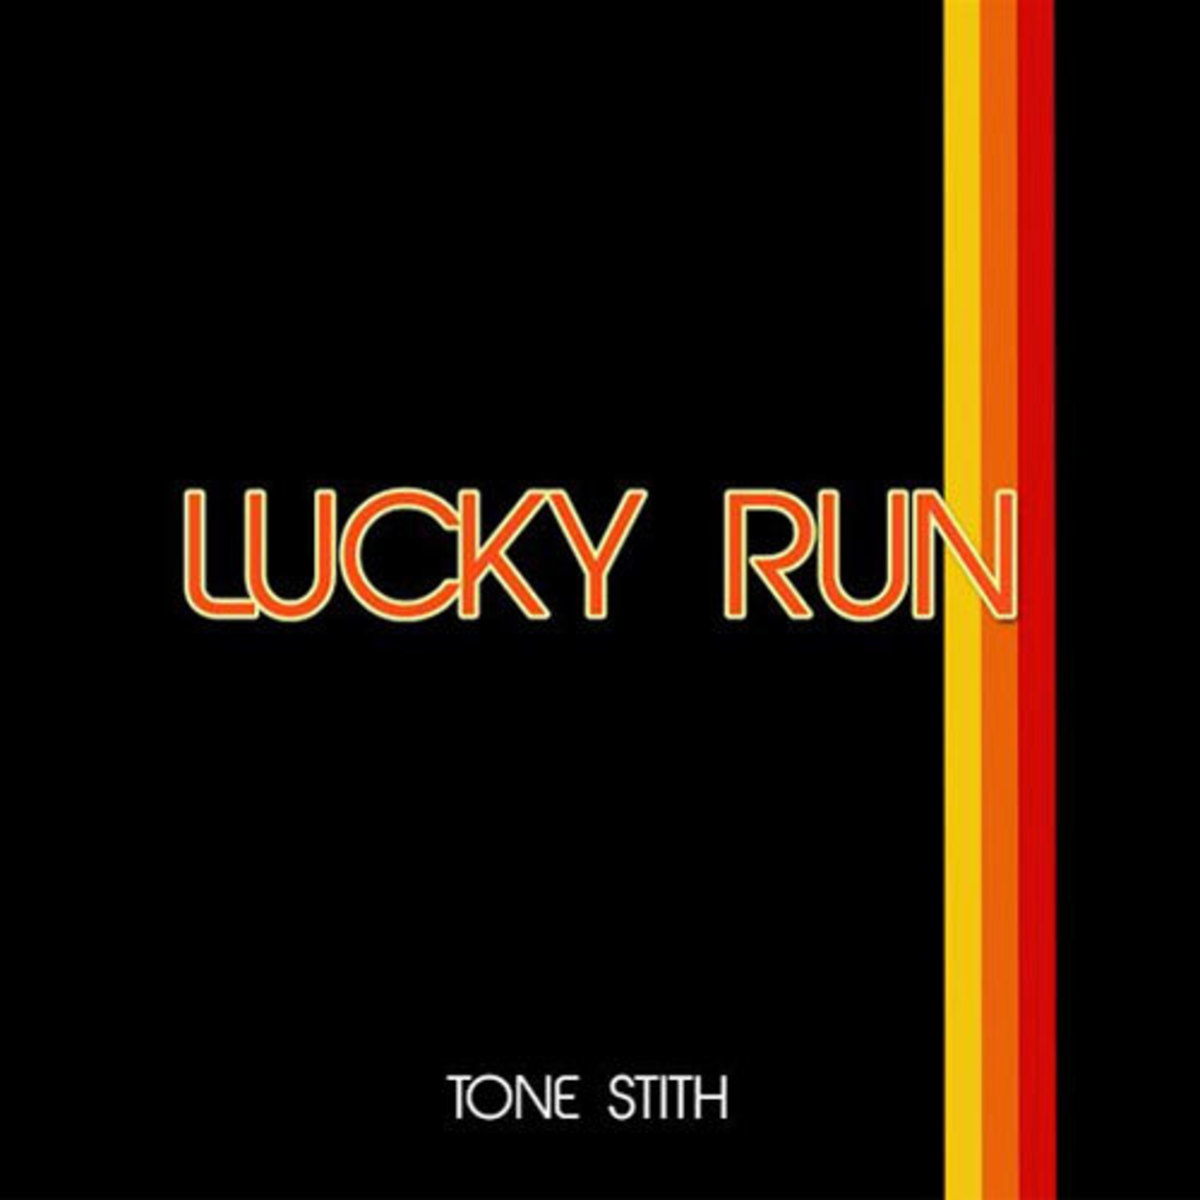 tone-stith-lucky-run.jpg